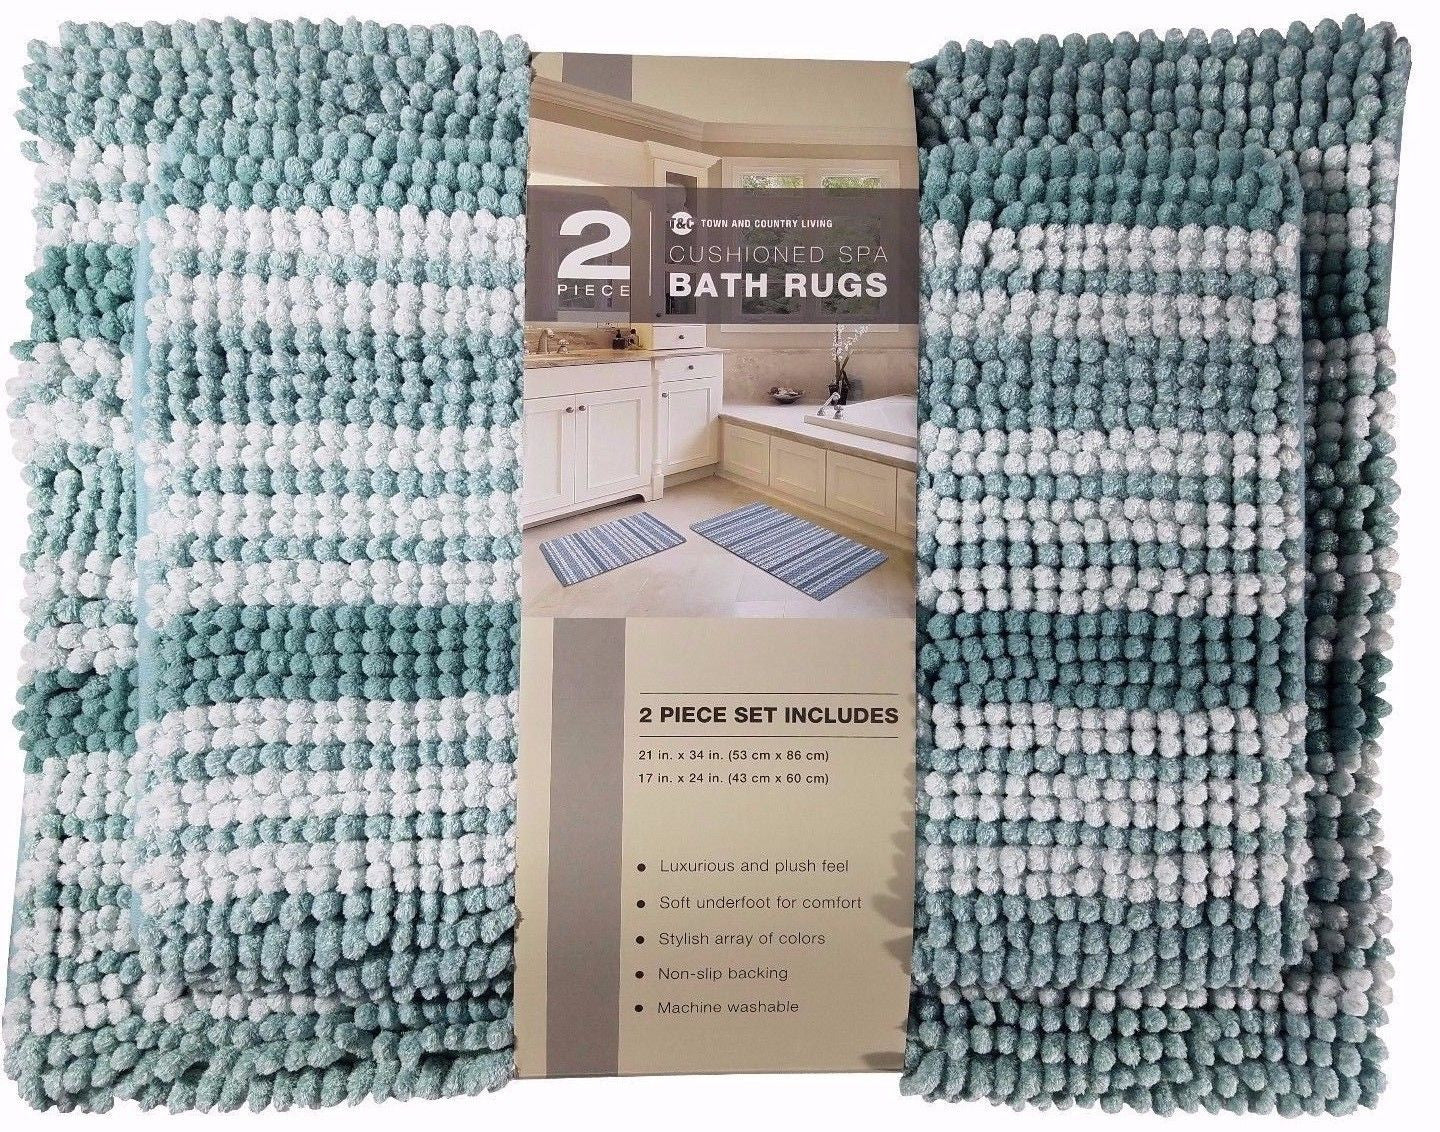 Town & Country Living Cushioned Spa Bath Rugs Plush 2 Piece Set - Green